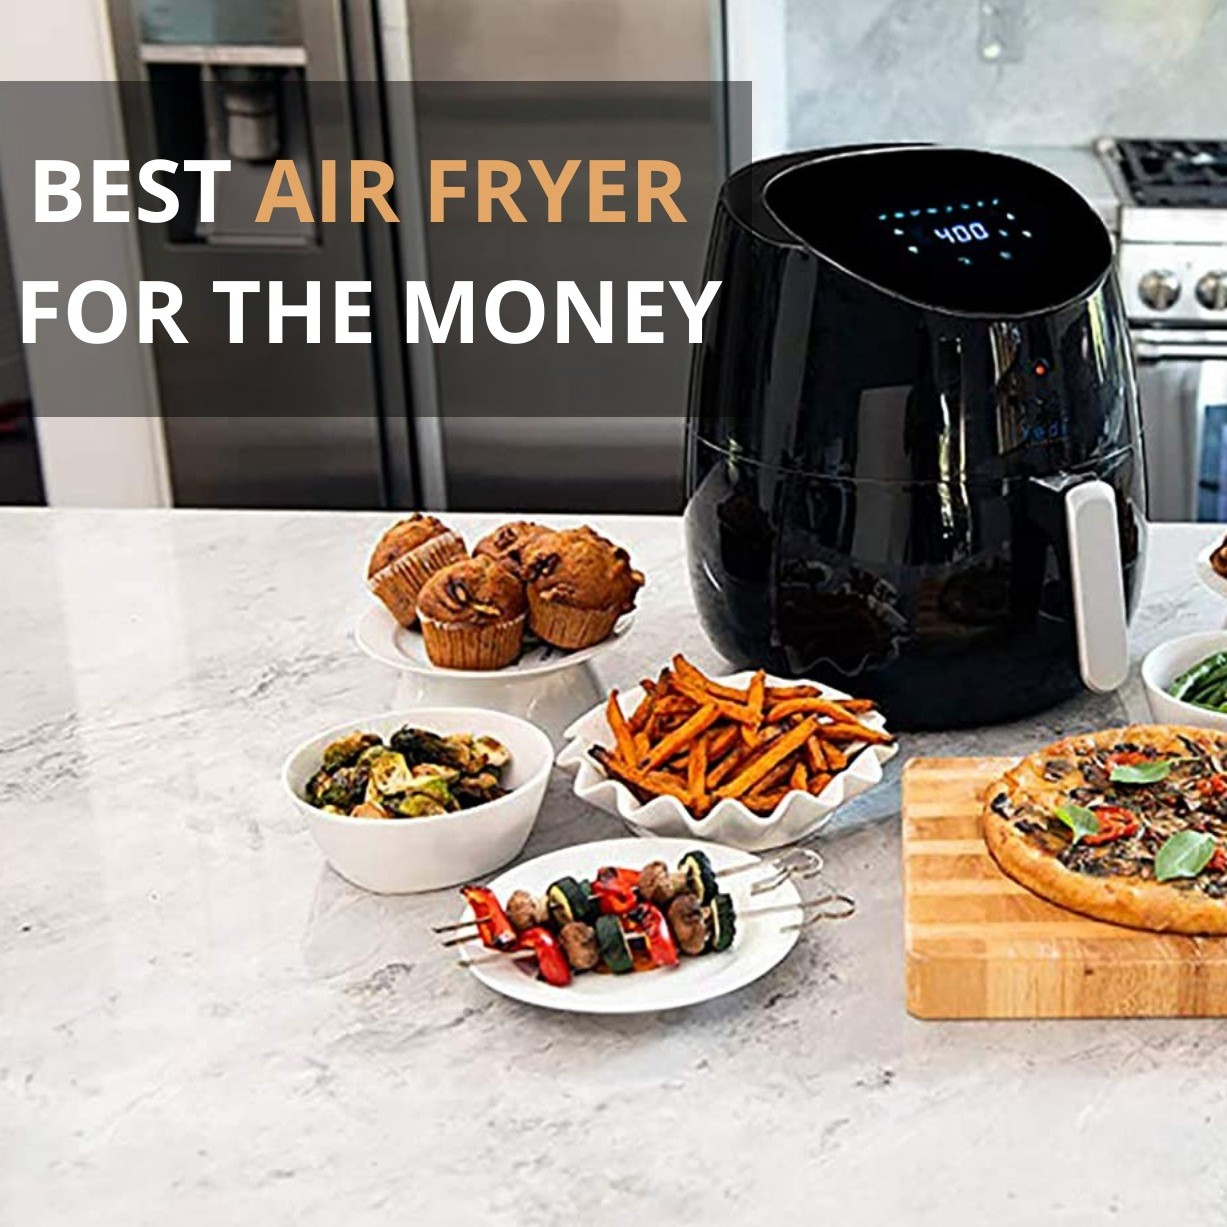 Best Air Fryer for the Money